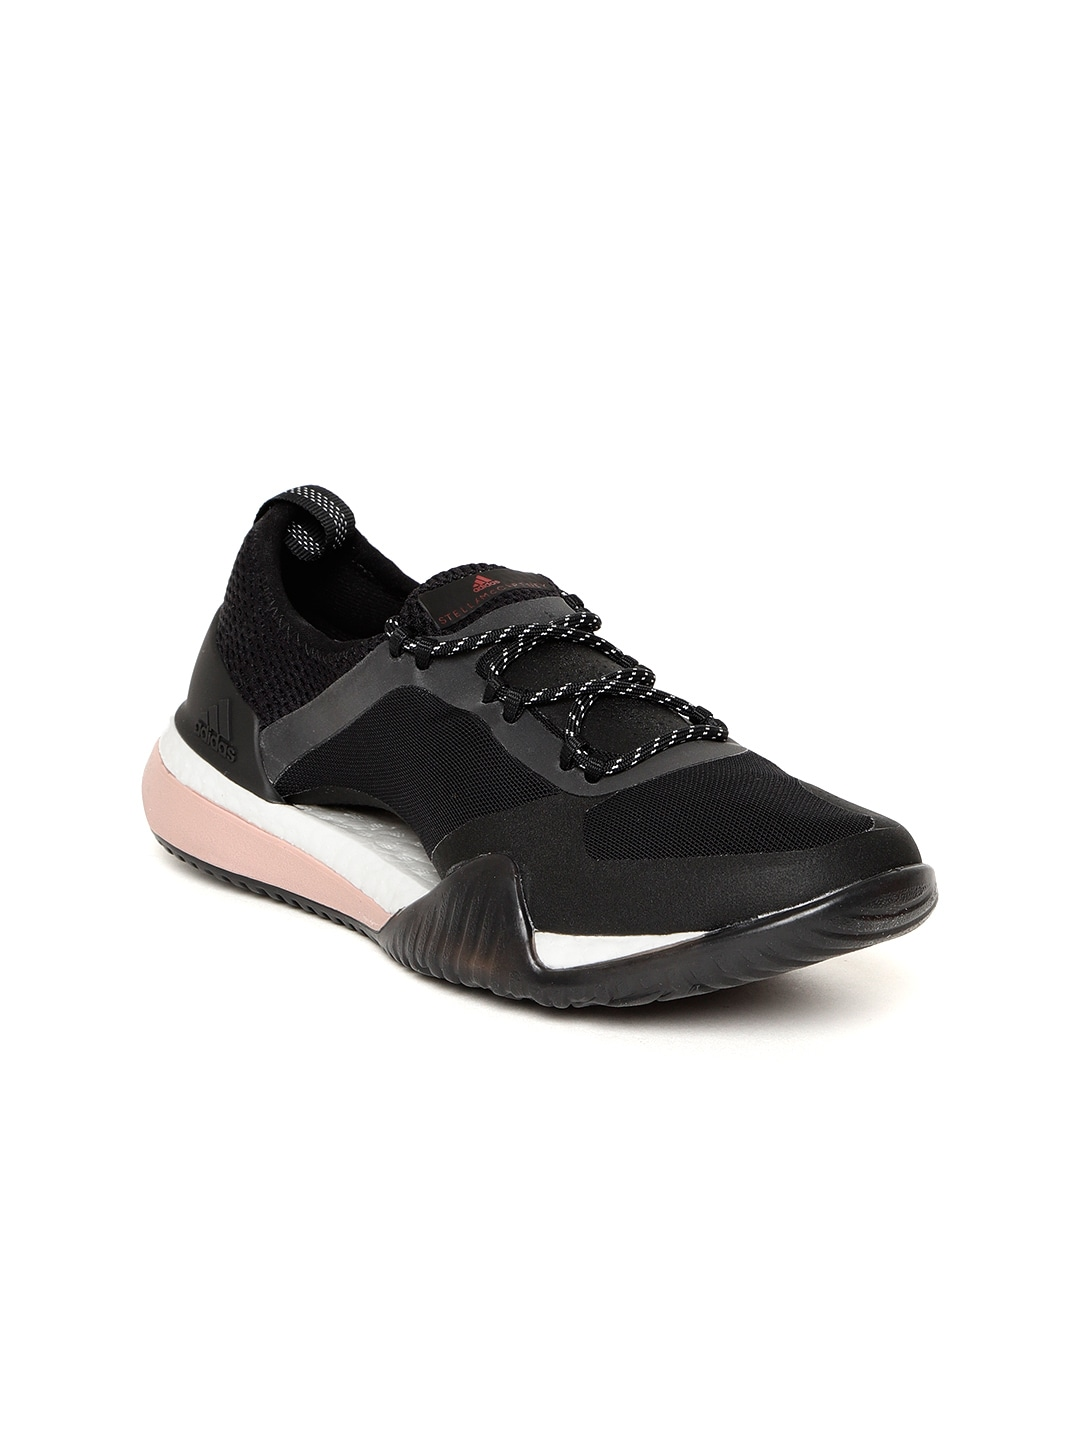 0f91e621045925 Adidas Training Shoes - Buy Adidas Training Shoes Online in India